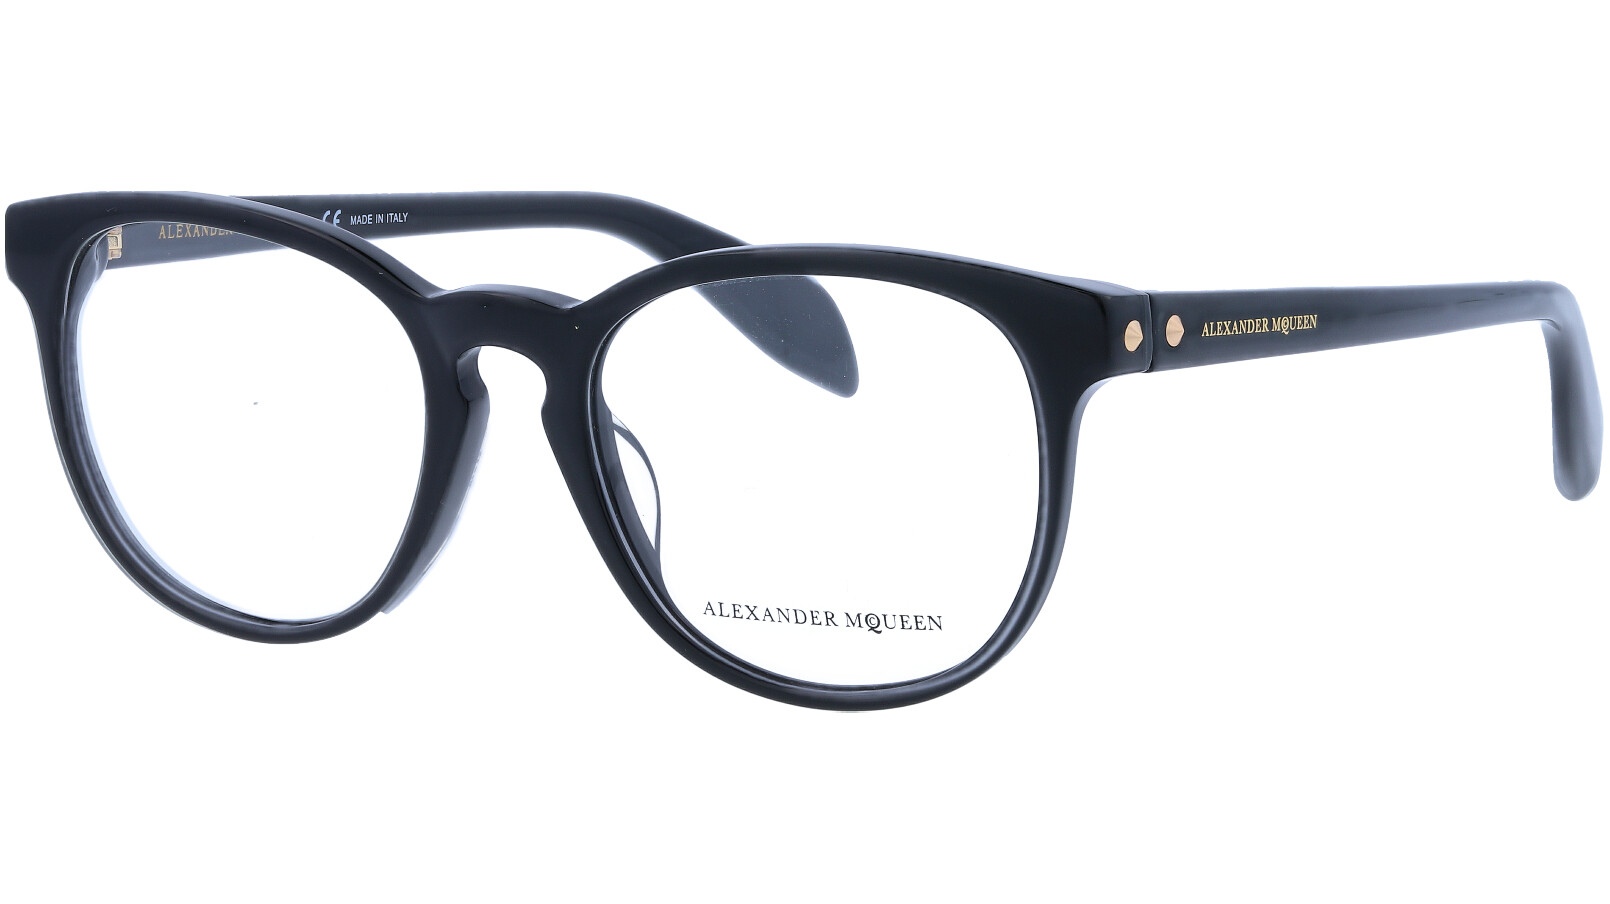 ALEXANDER MCQUEEN AM0100O 001 51 BLACK Glasses